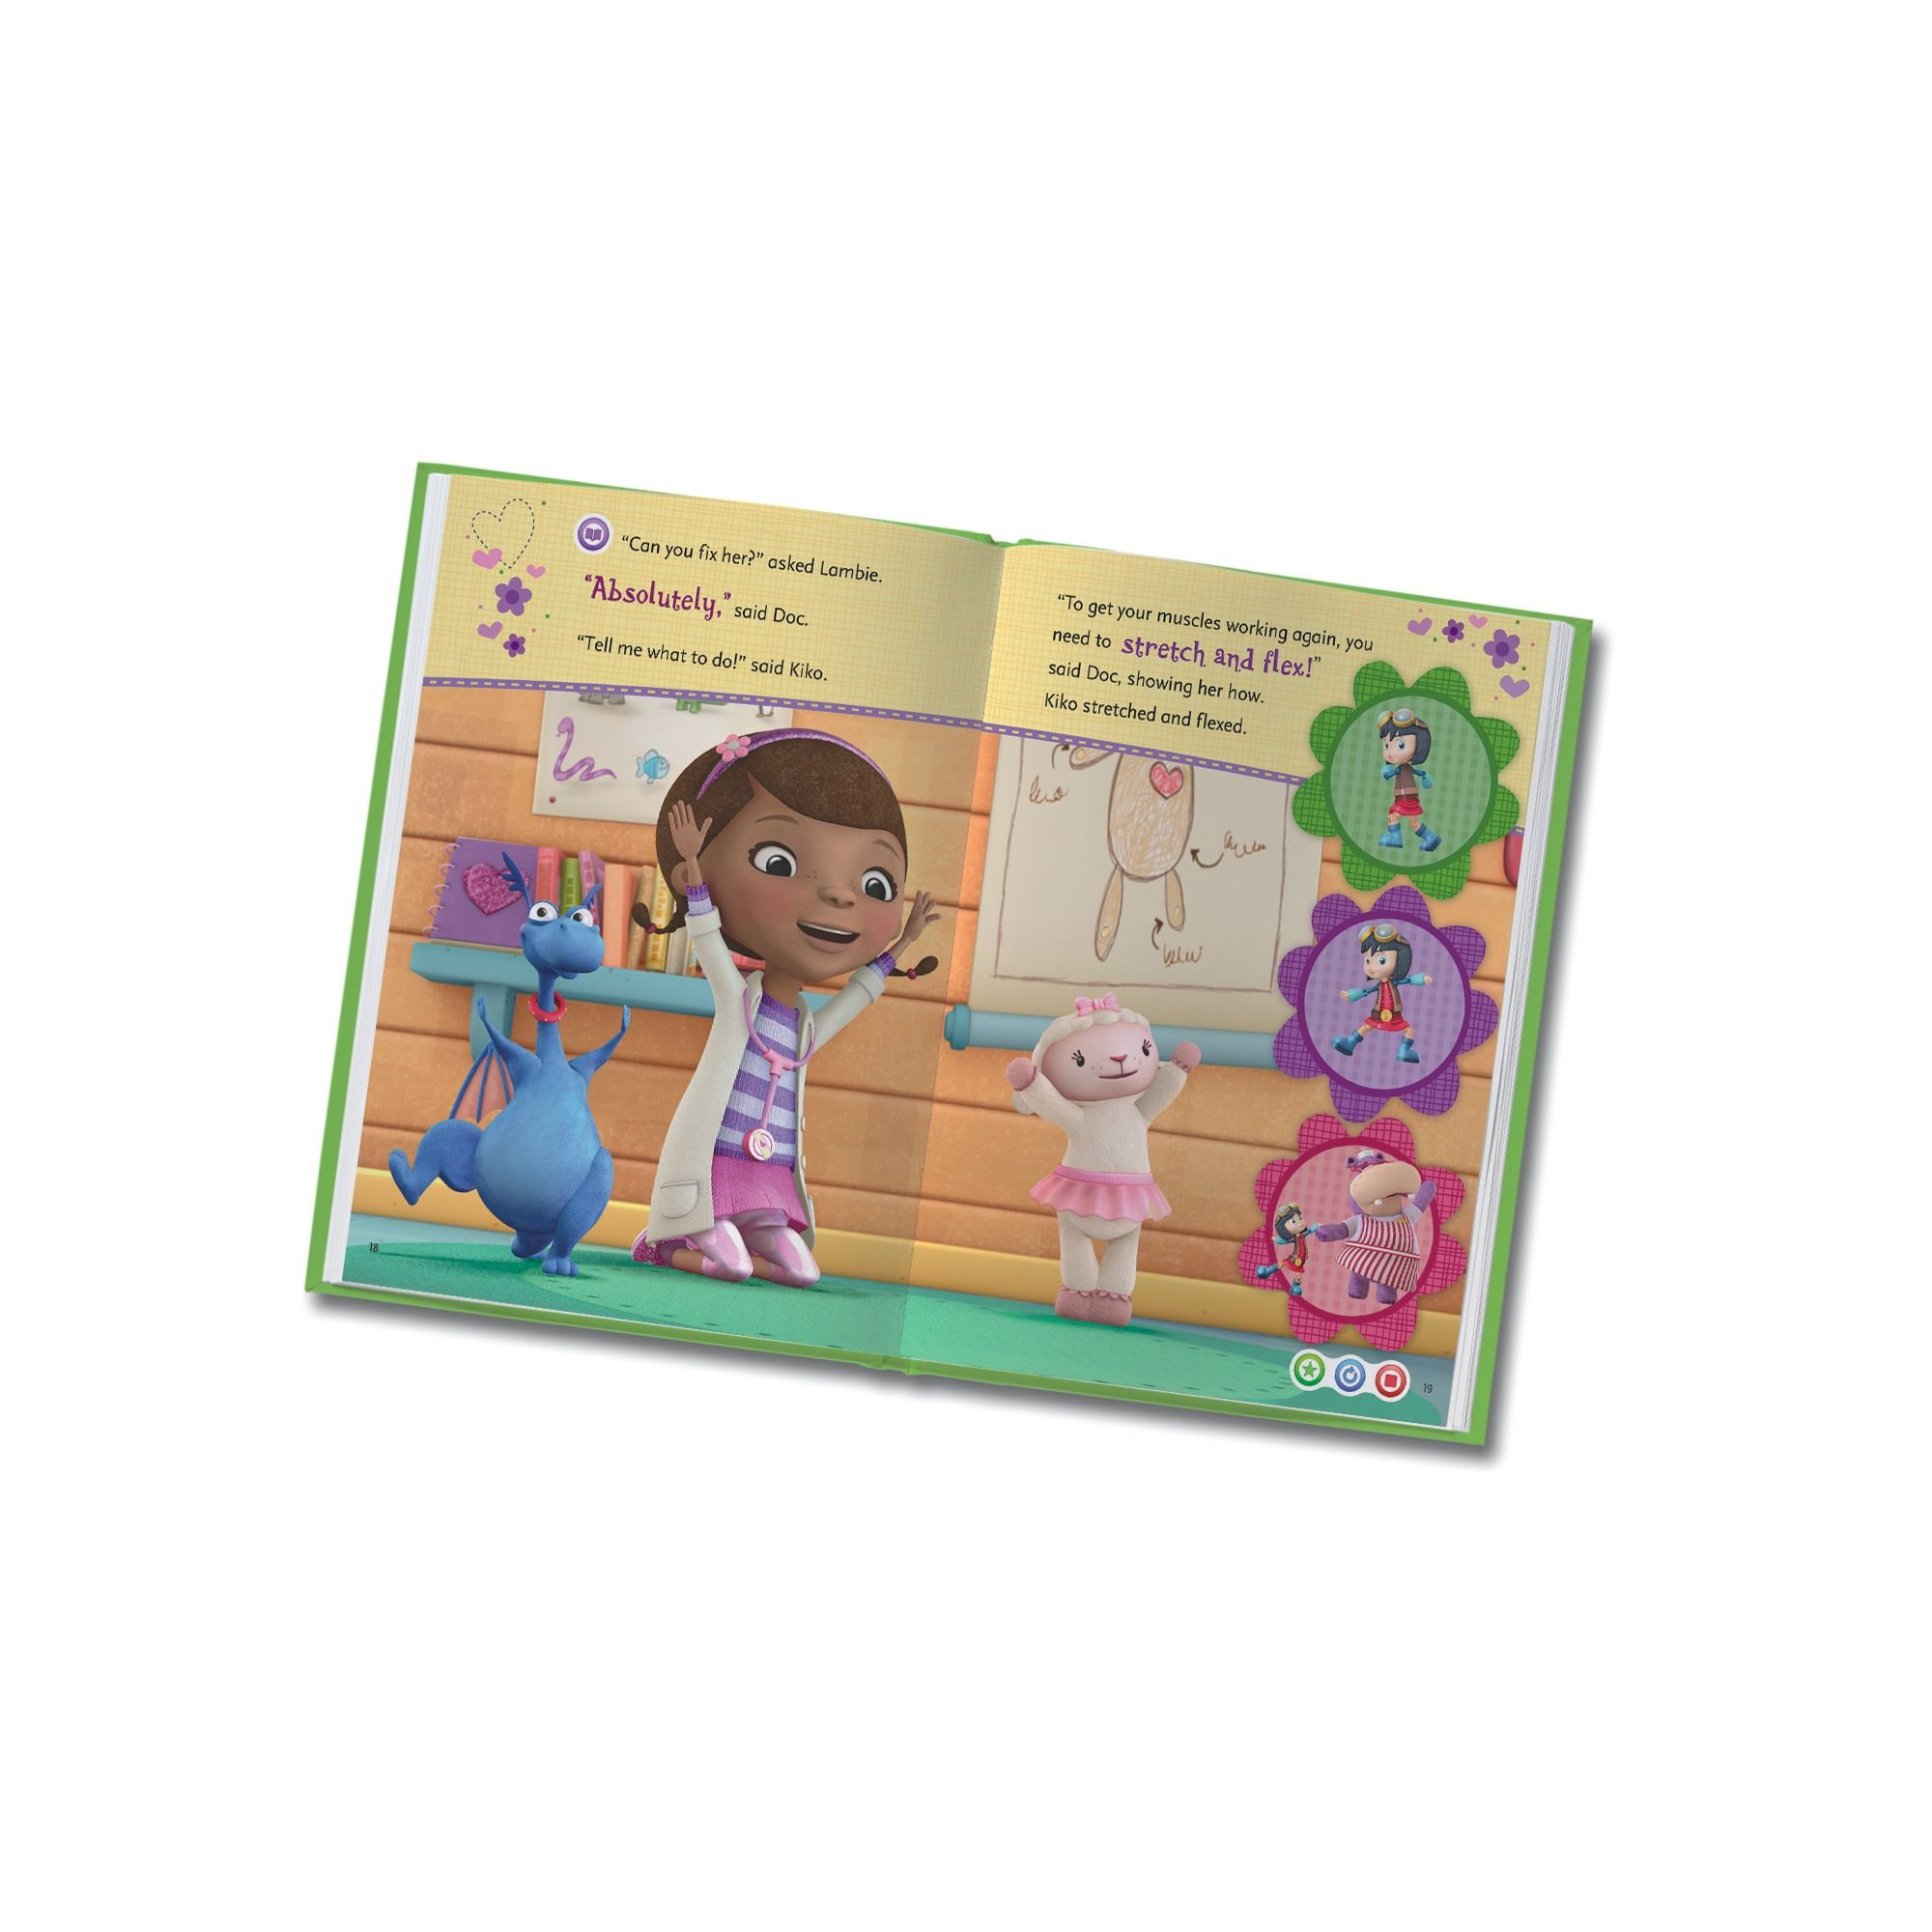 LeapFrog LeapReader: Disney Doc McStuffins: The New Girl Read On Your Own Book works with Tag by LeapFrog (Image #5)